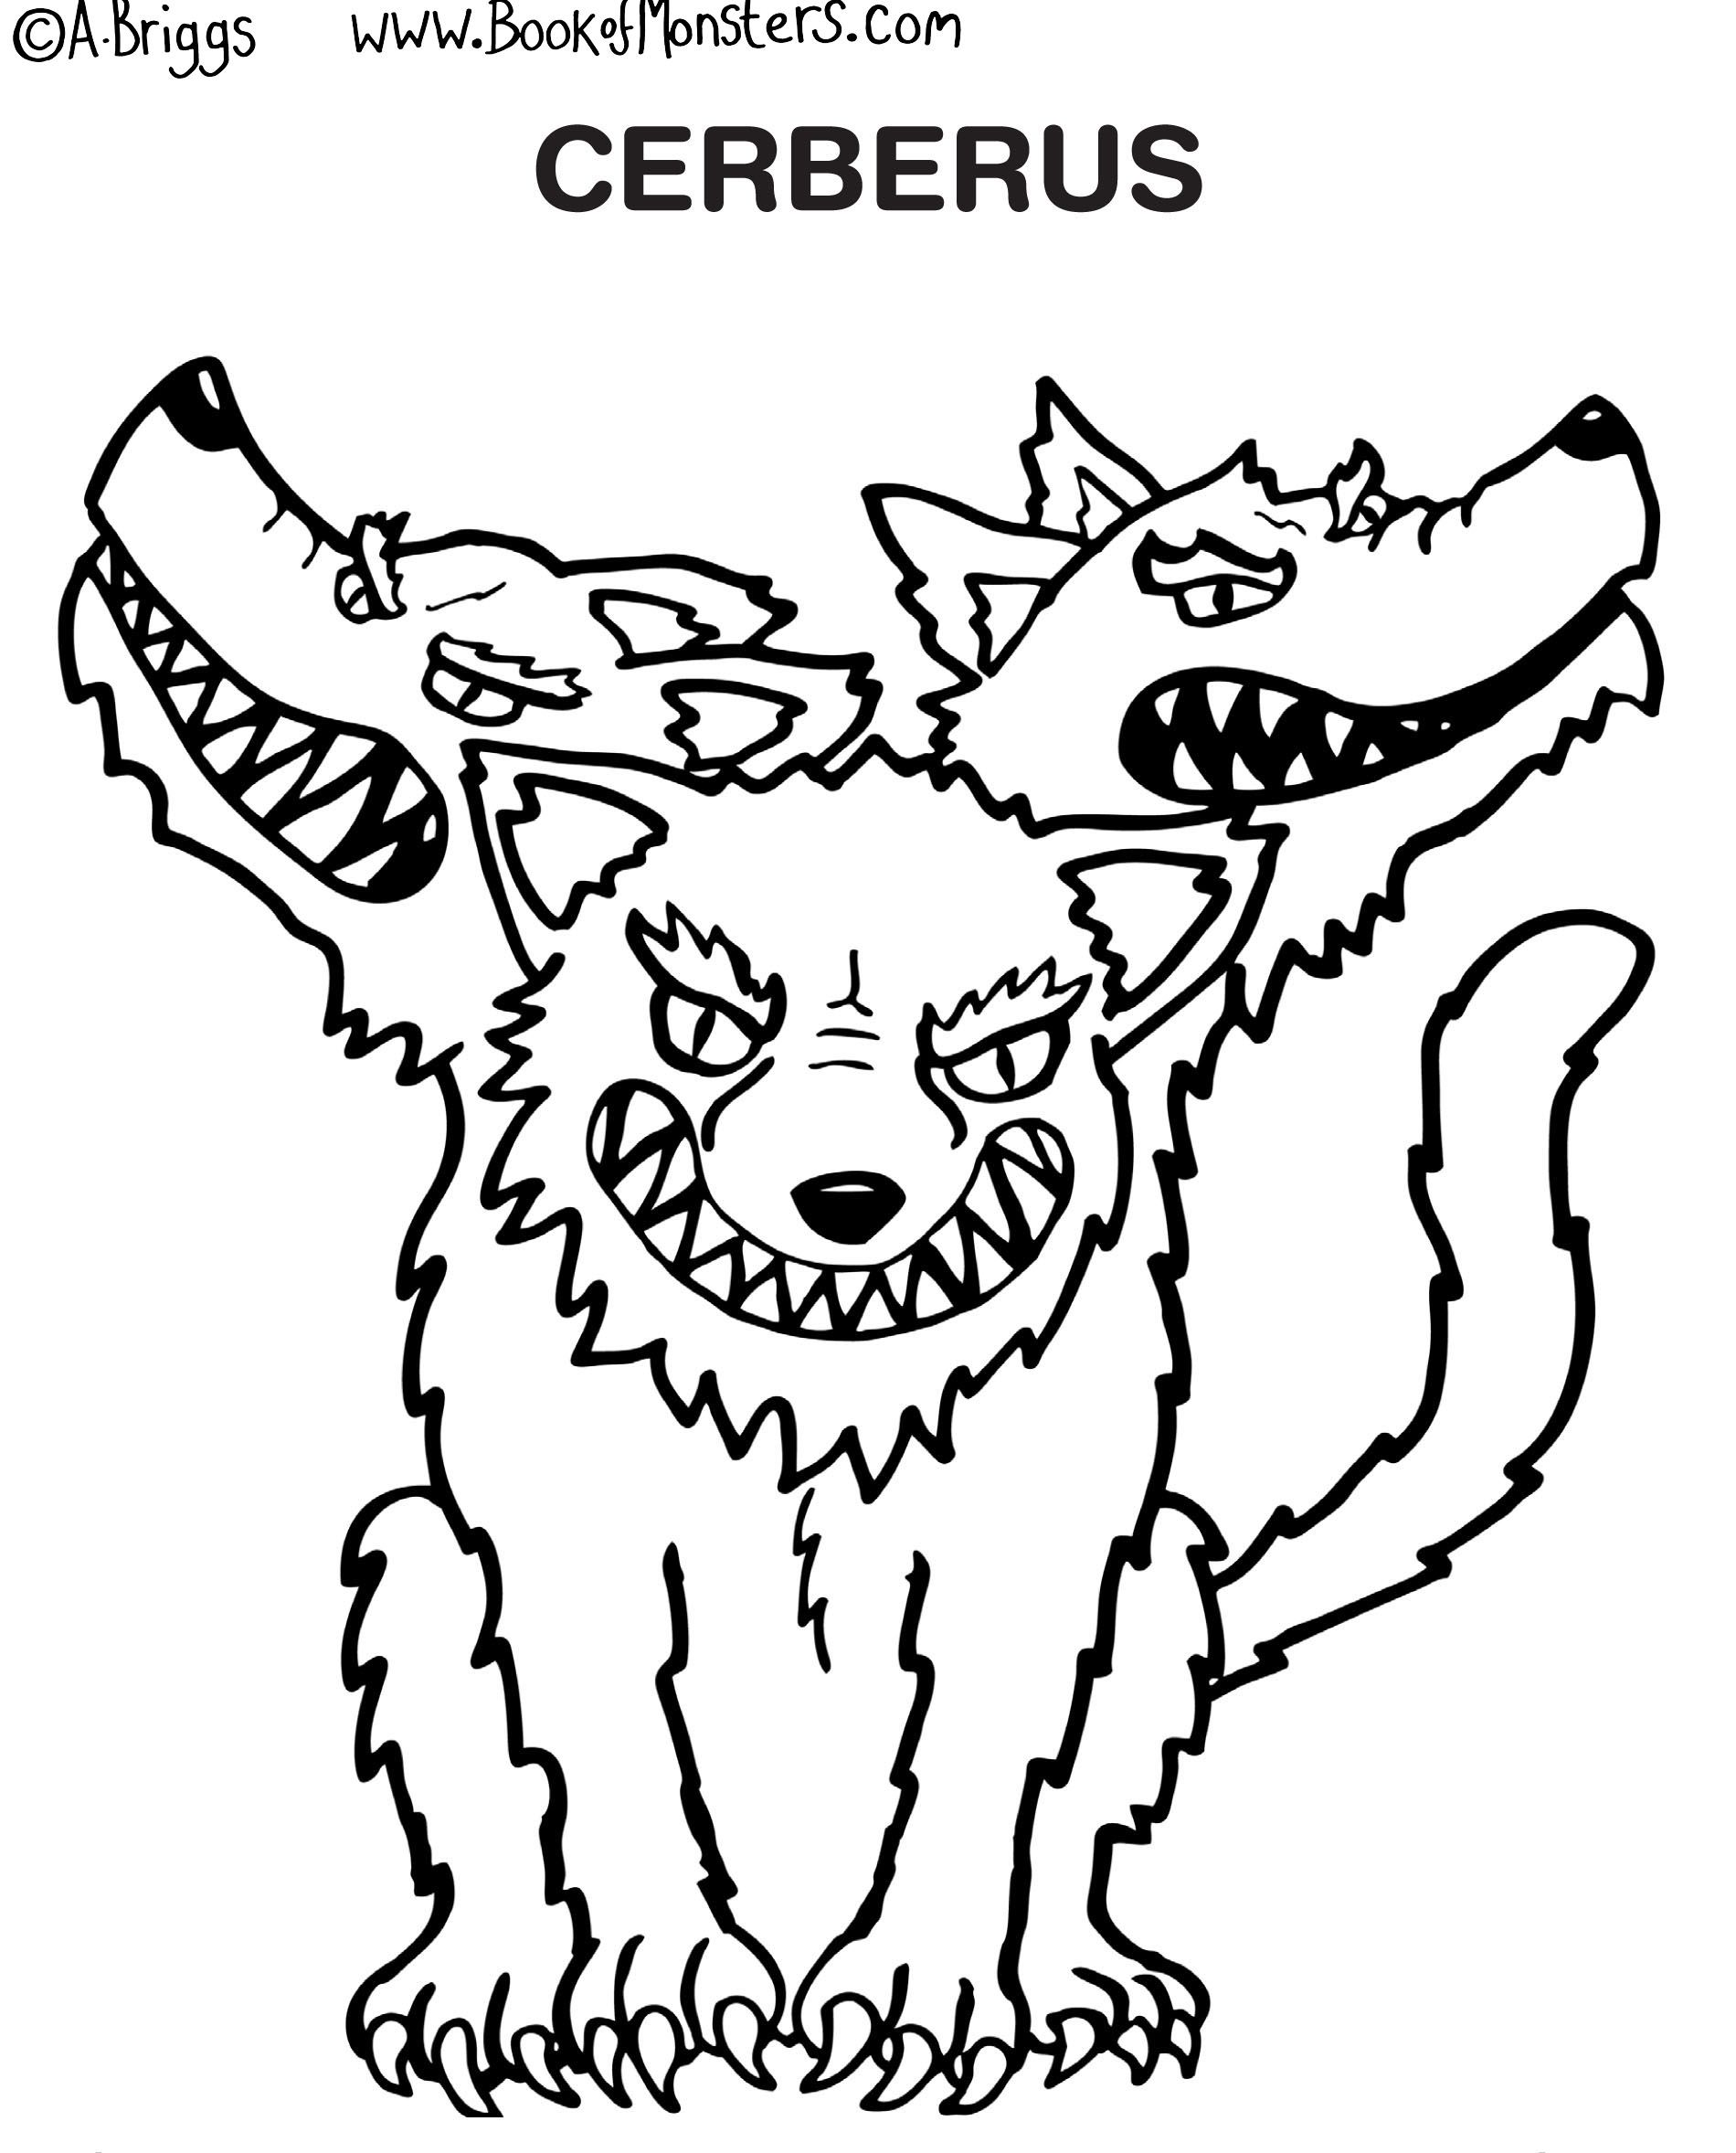 Book Of Monsters Coloring Page For Kids Cerberus